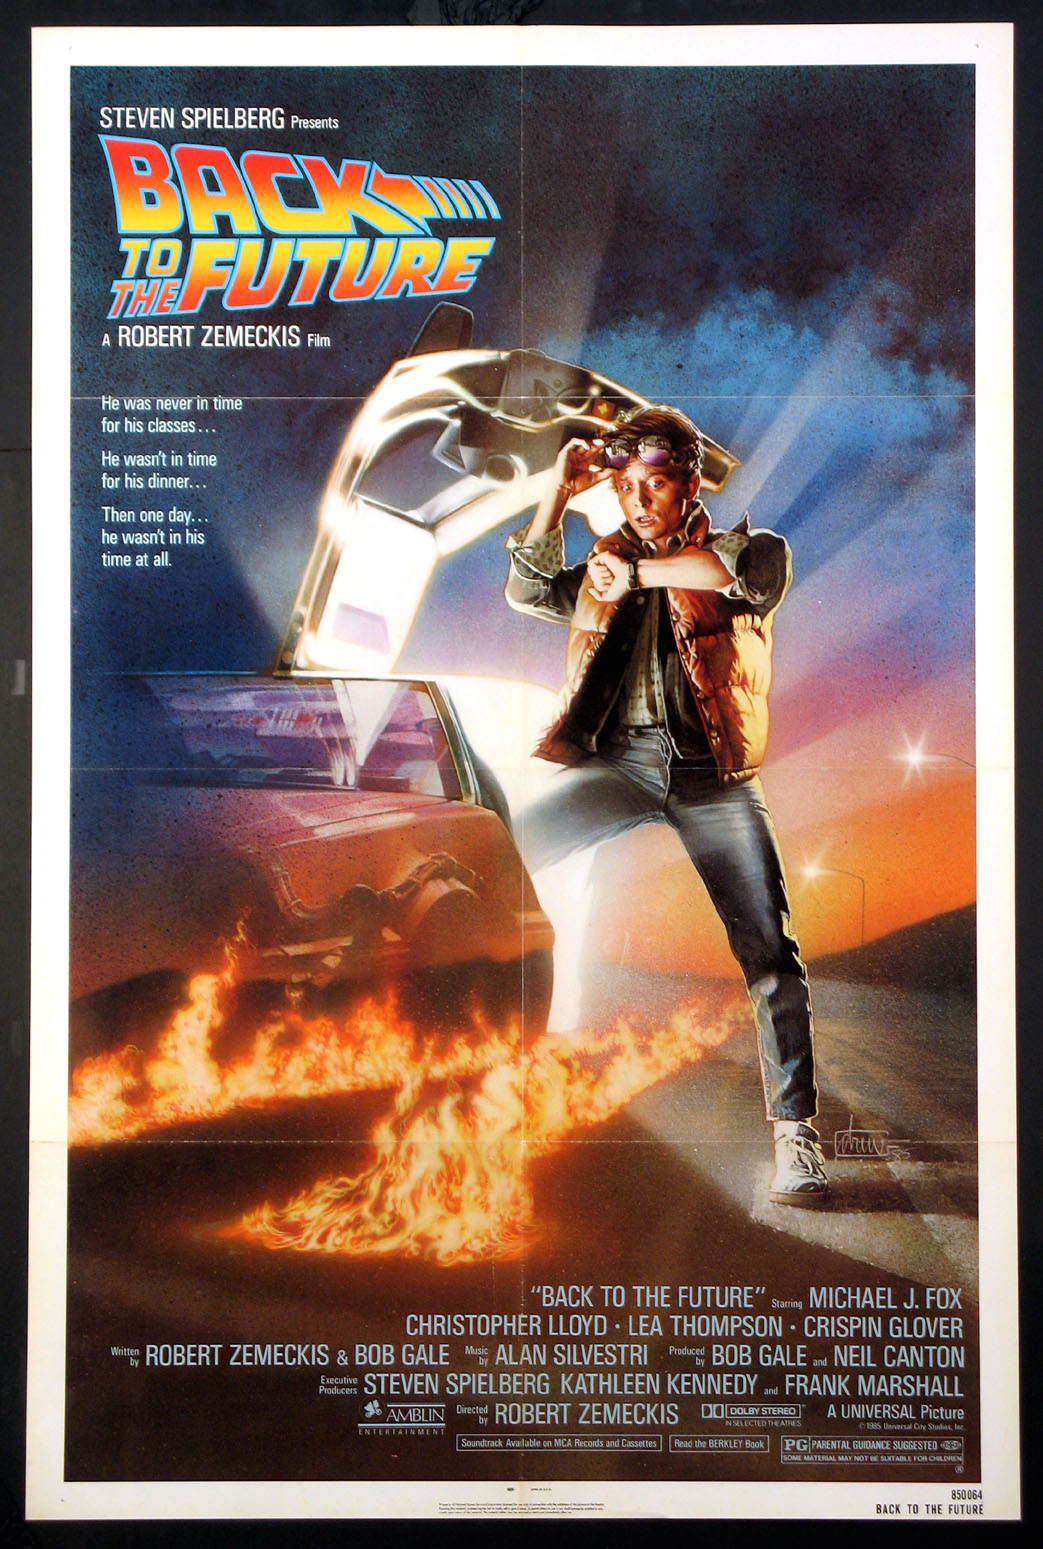 BACK TO THE FUTURE @ FilmPosters.com